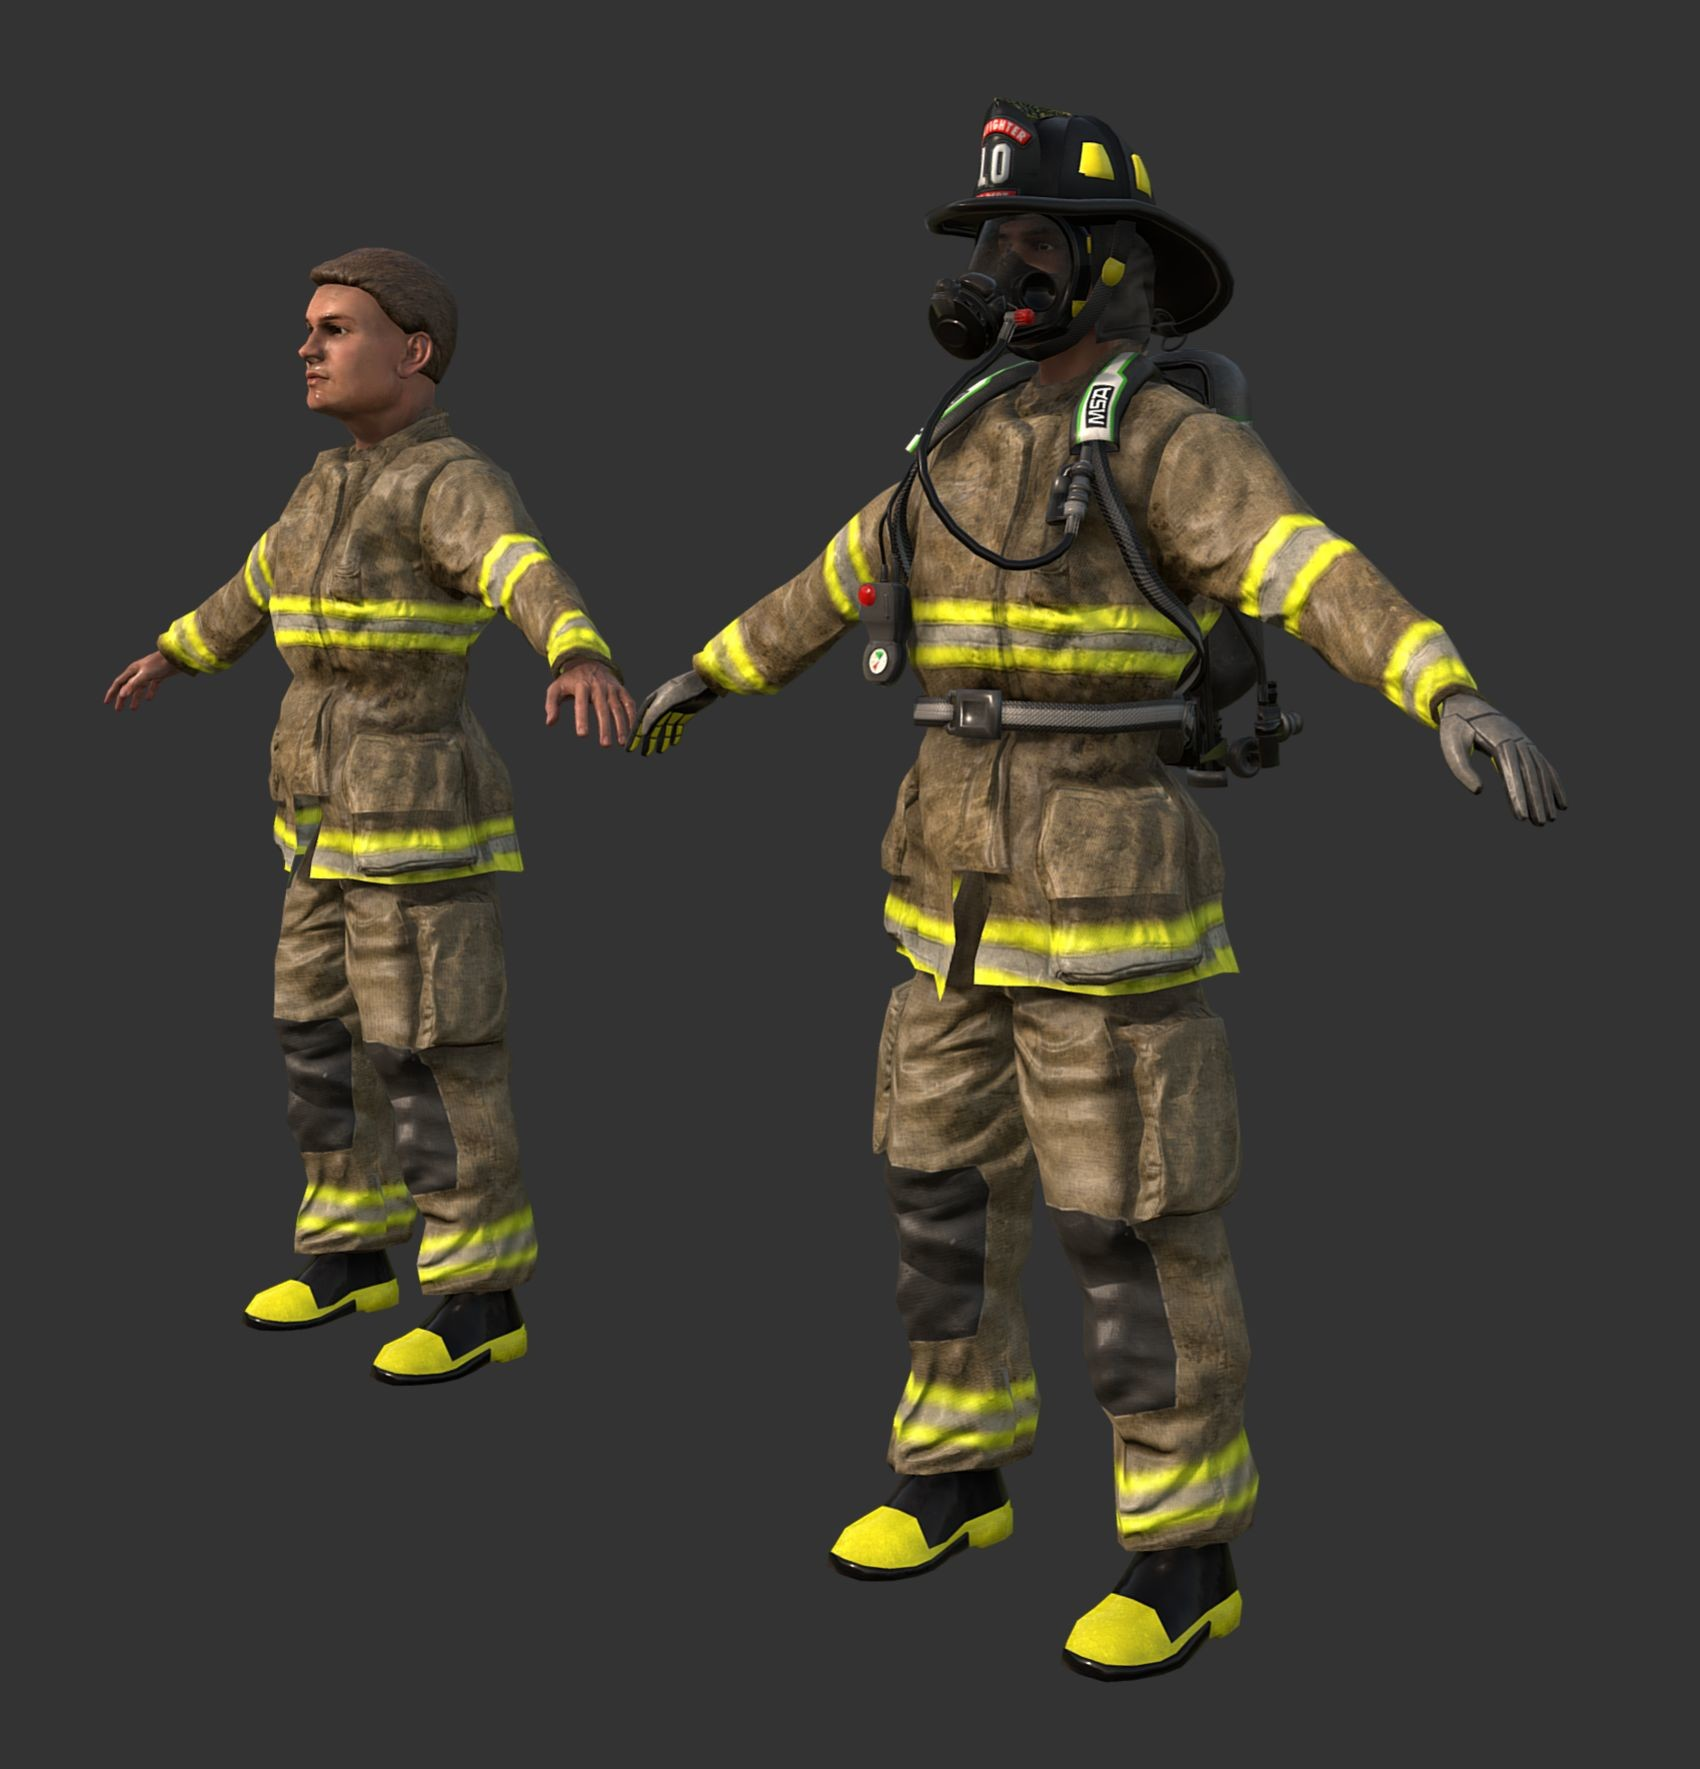 PBR Seamless Textures - Firefighter Character 3D Game Ready Model